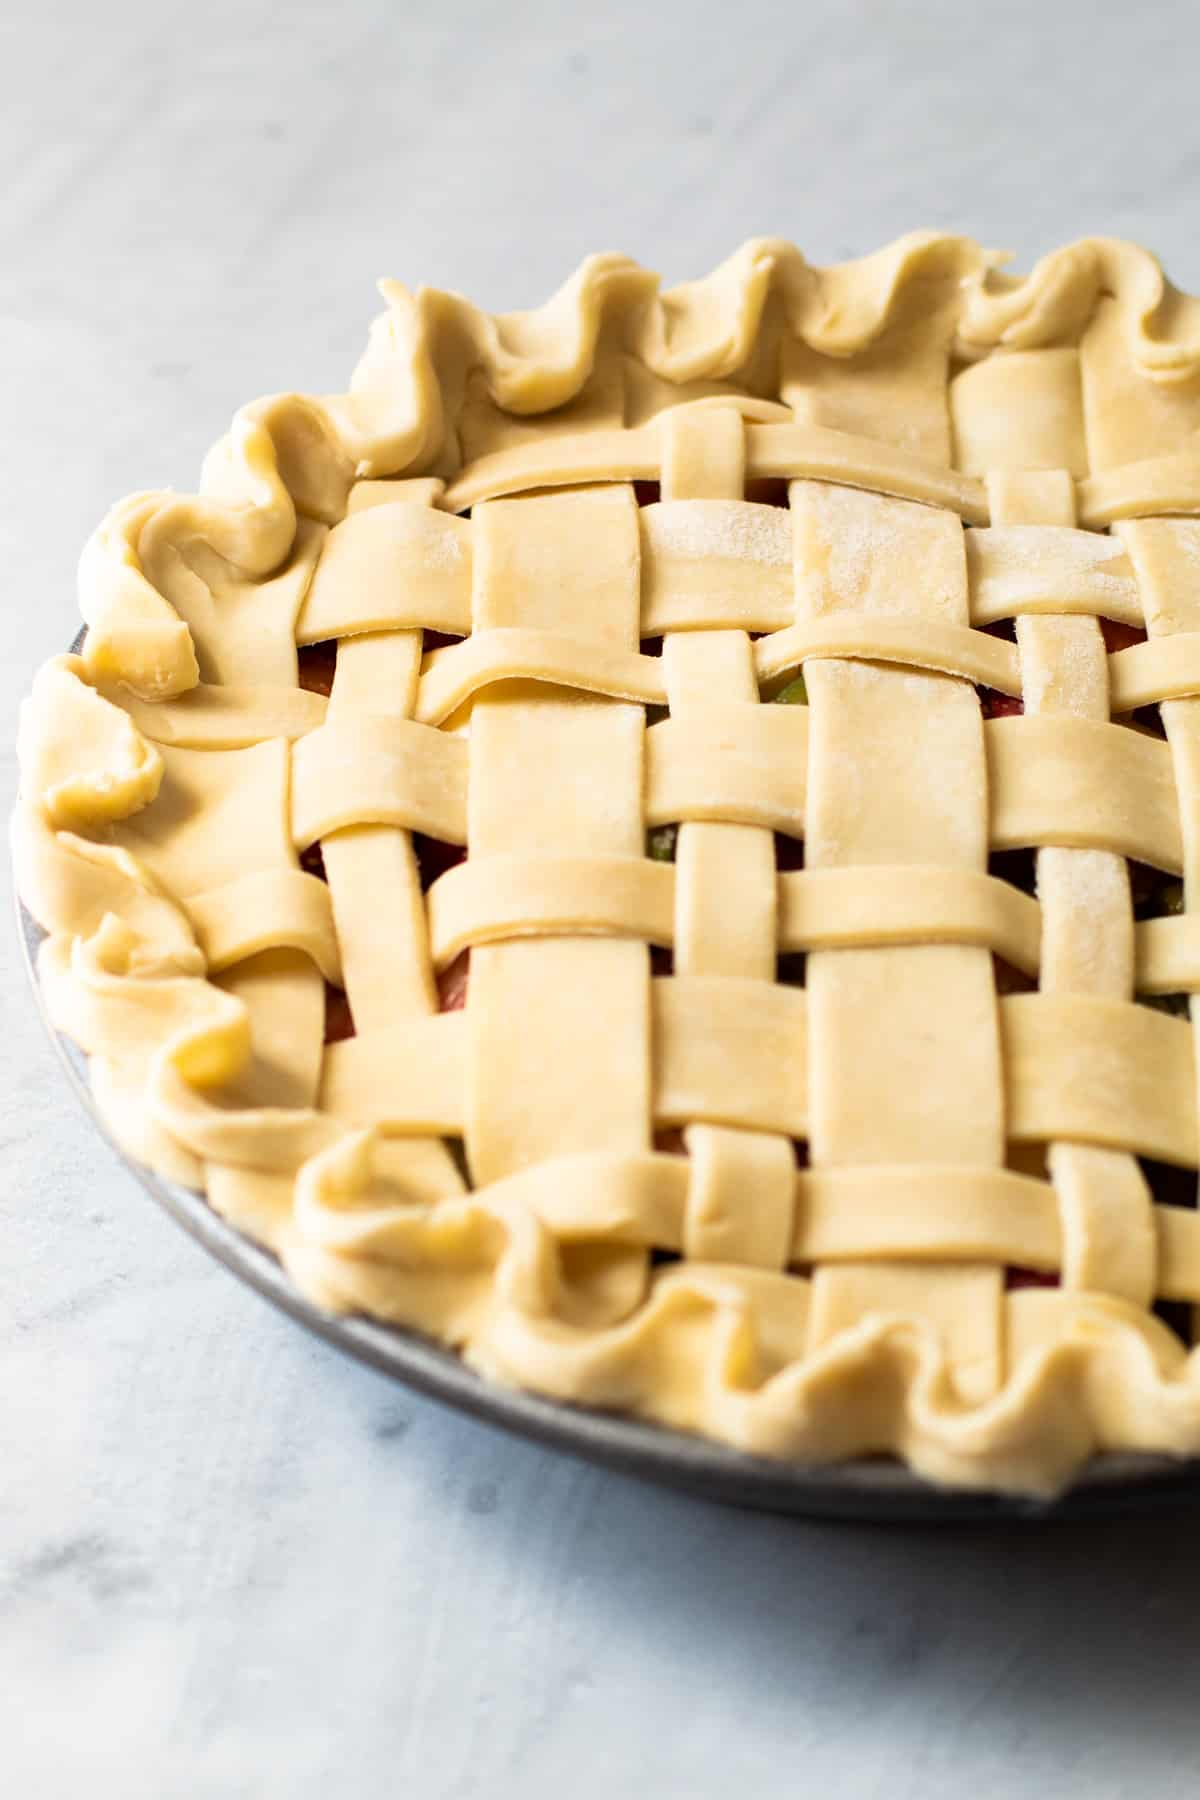 A unbaked pie with a decorative crust.